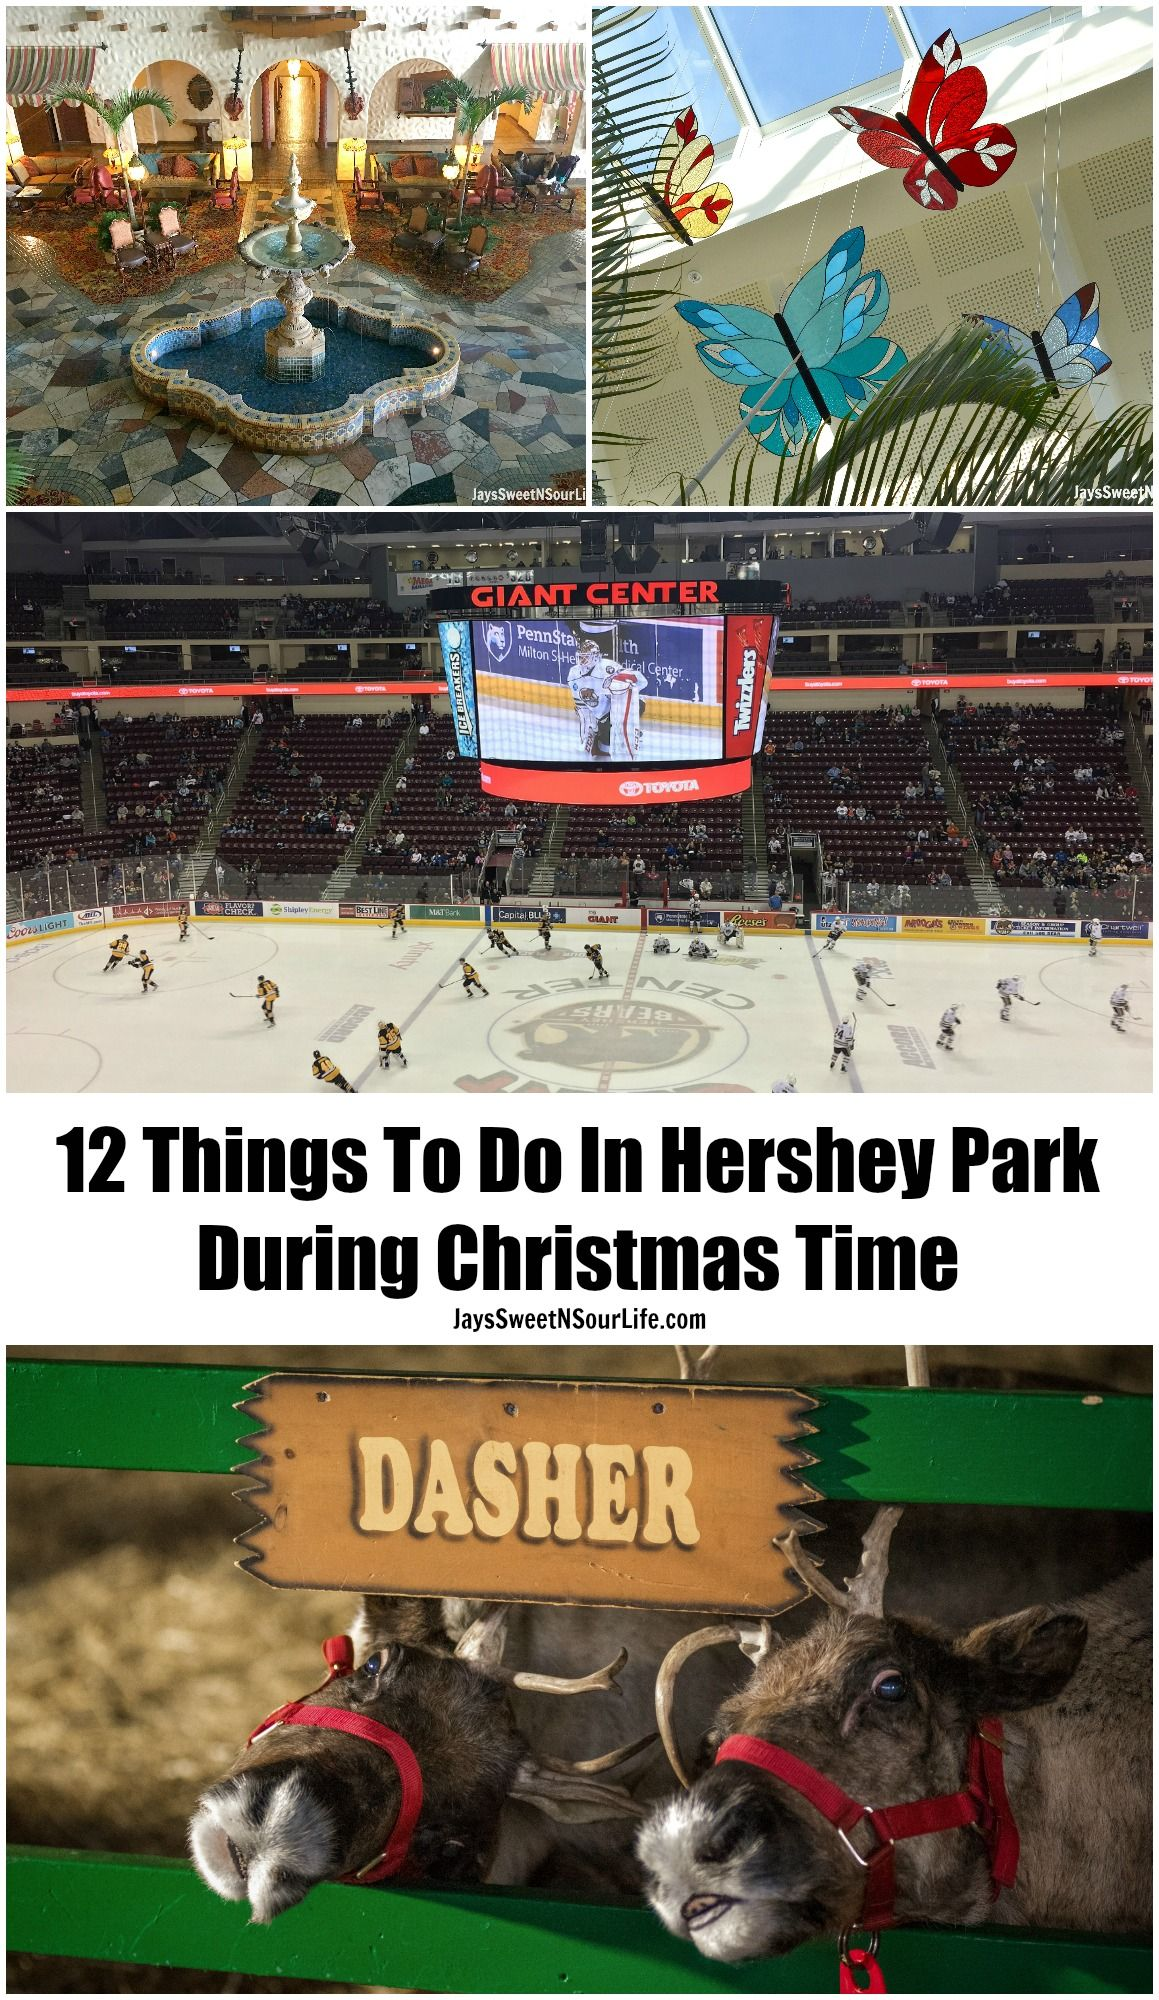 12 Things To Do In Hershey, PA During Christmas Time | Travel fun, Christmas time, Ny trip